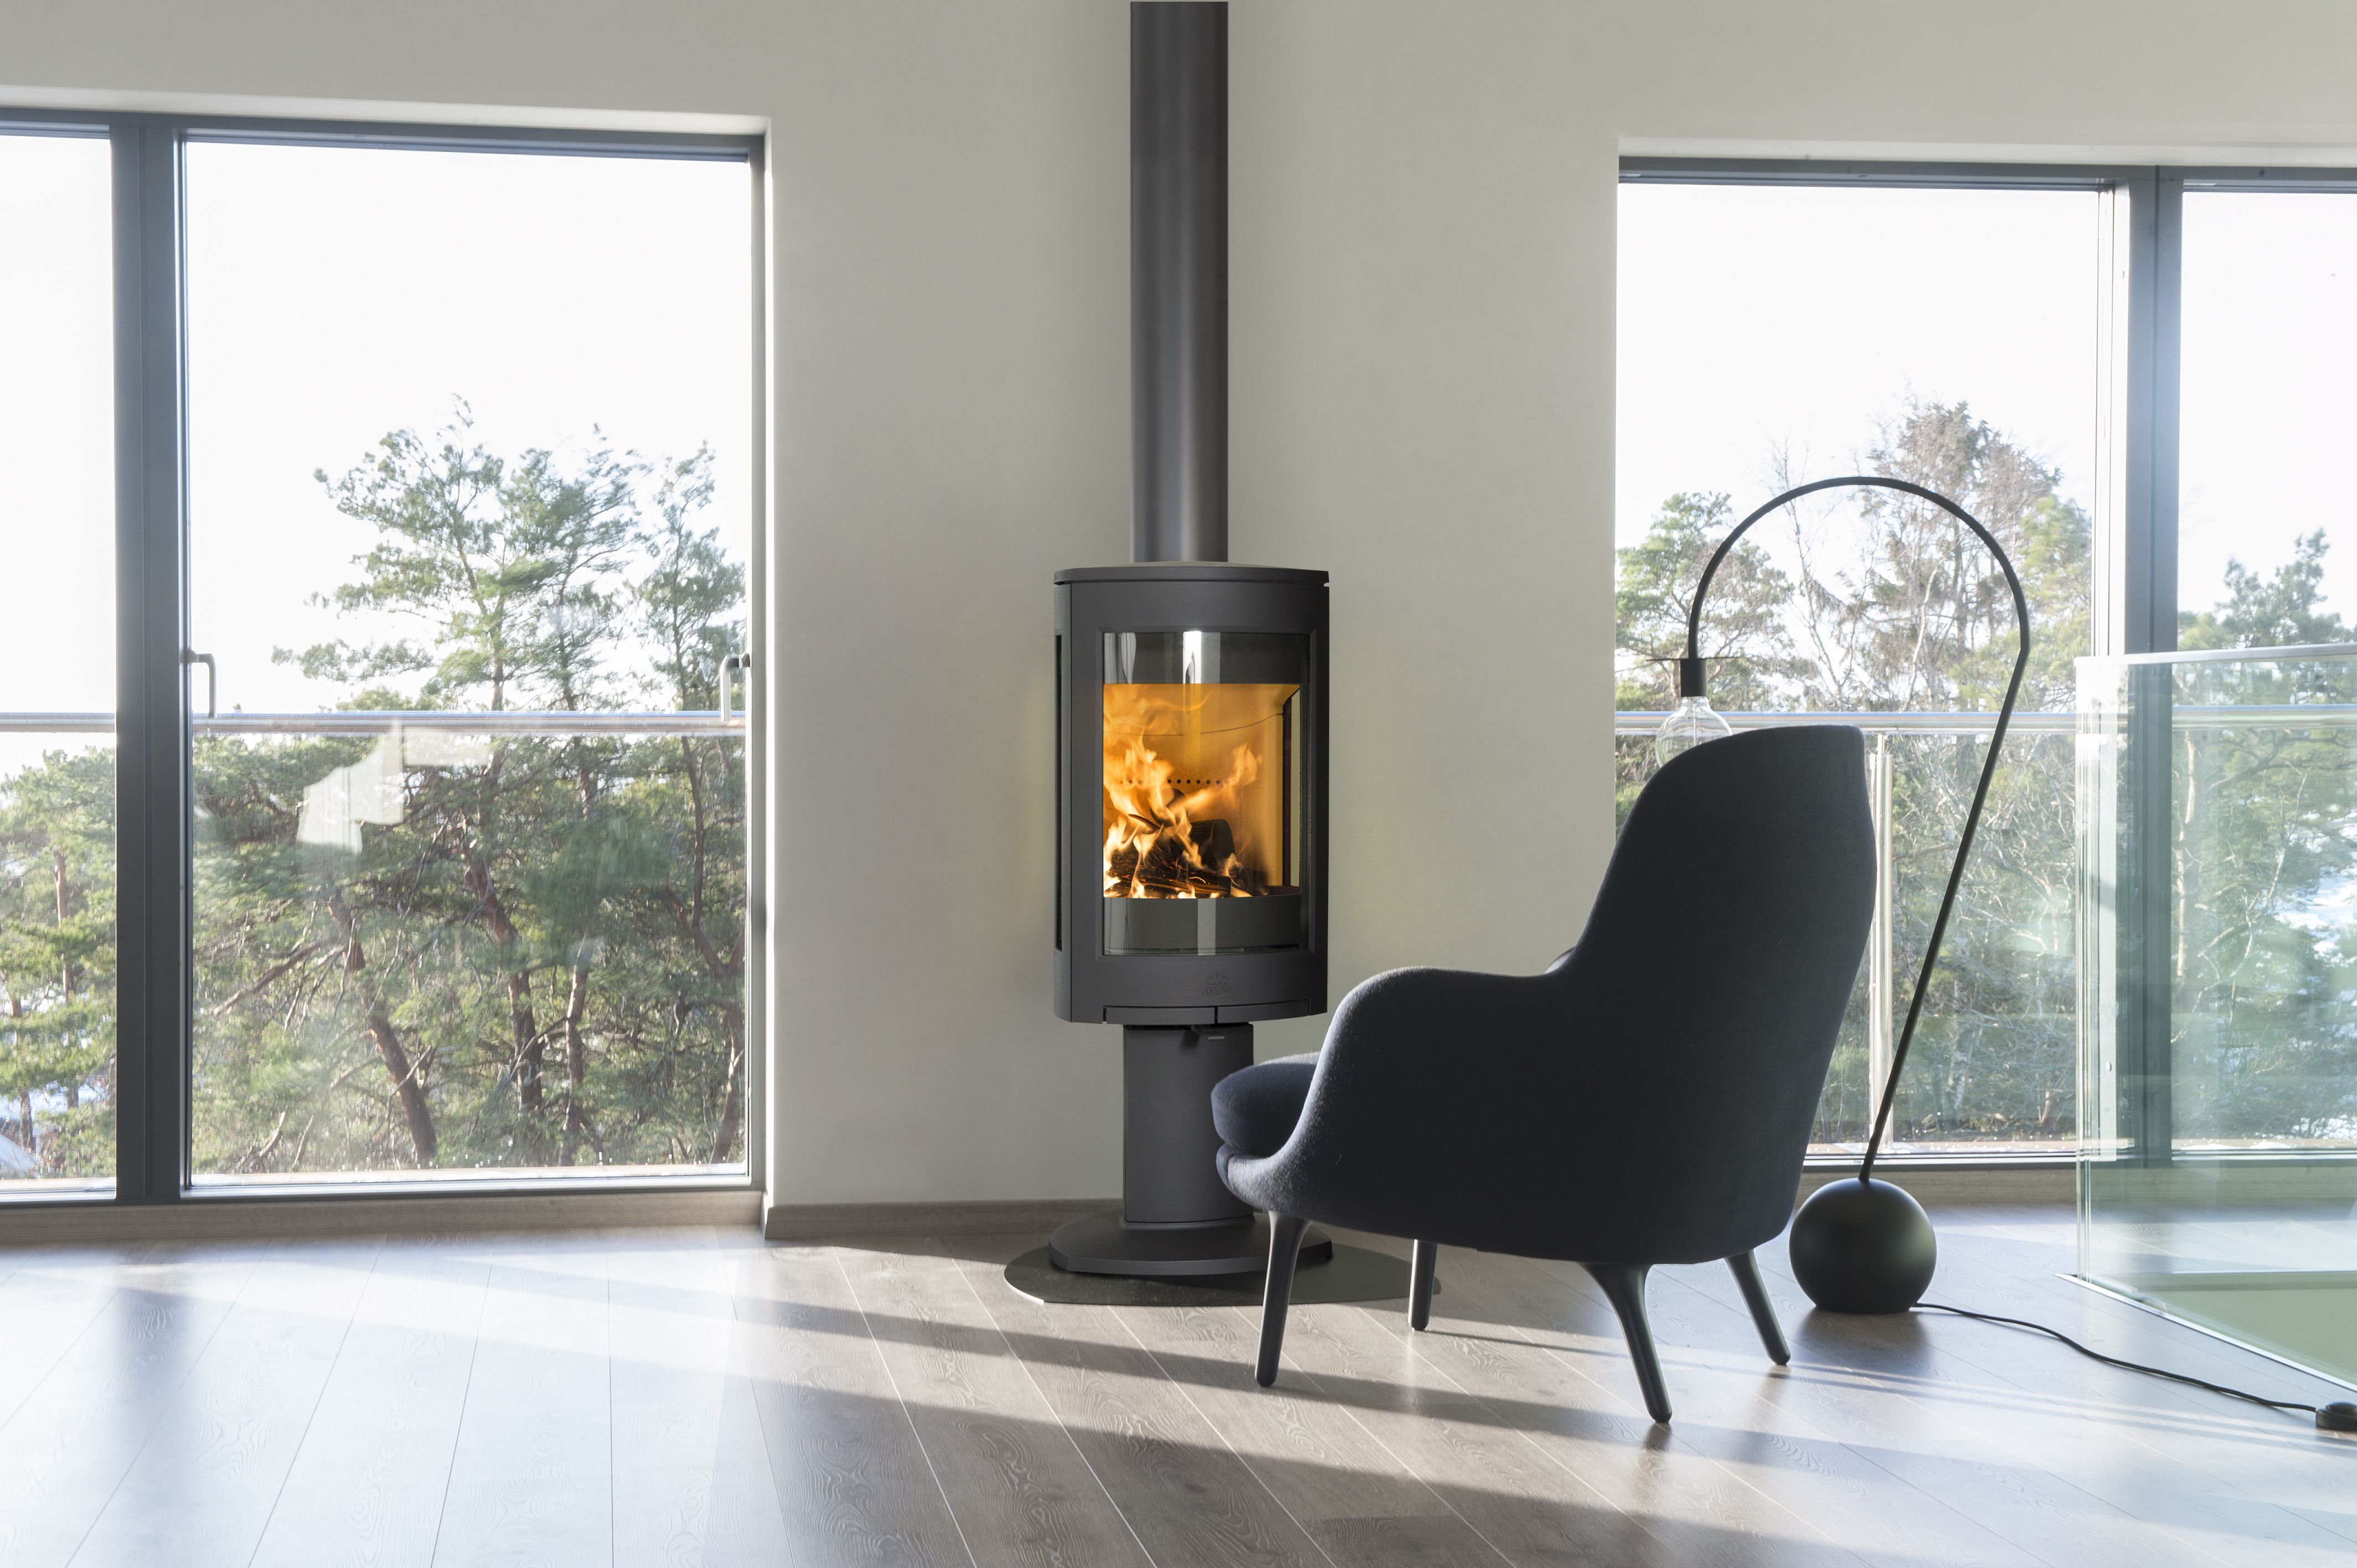 The Jotul F 373 Advance Is A Large Wood Burner Characterised By Its Modern Design Where The Combustion Chamb Wood Stove Wood Burner Modern Wood Burning Stoves